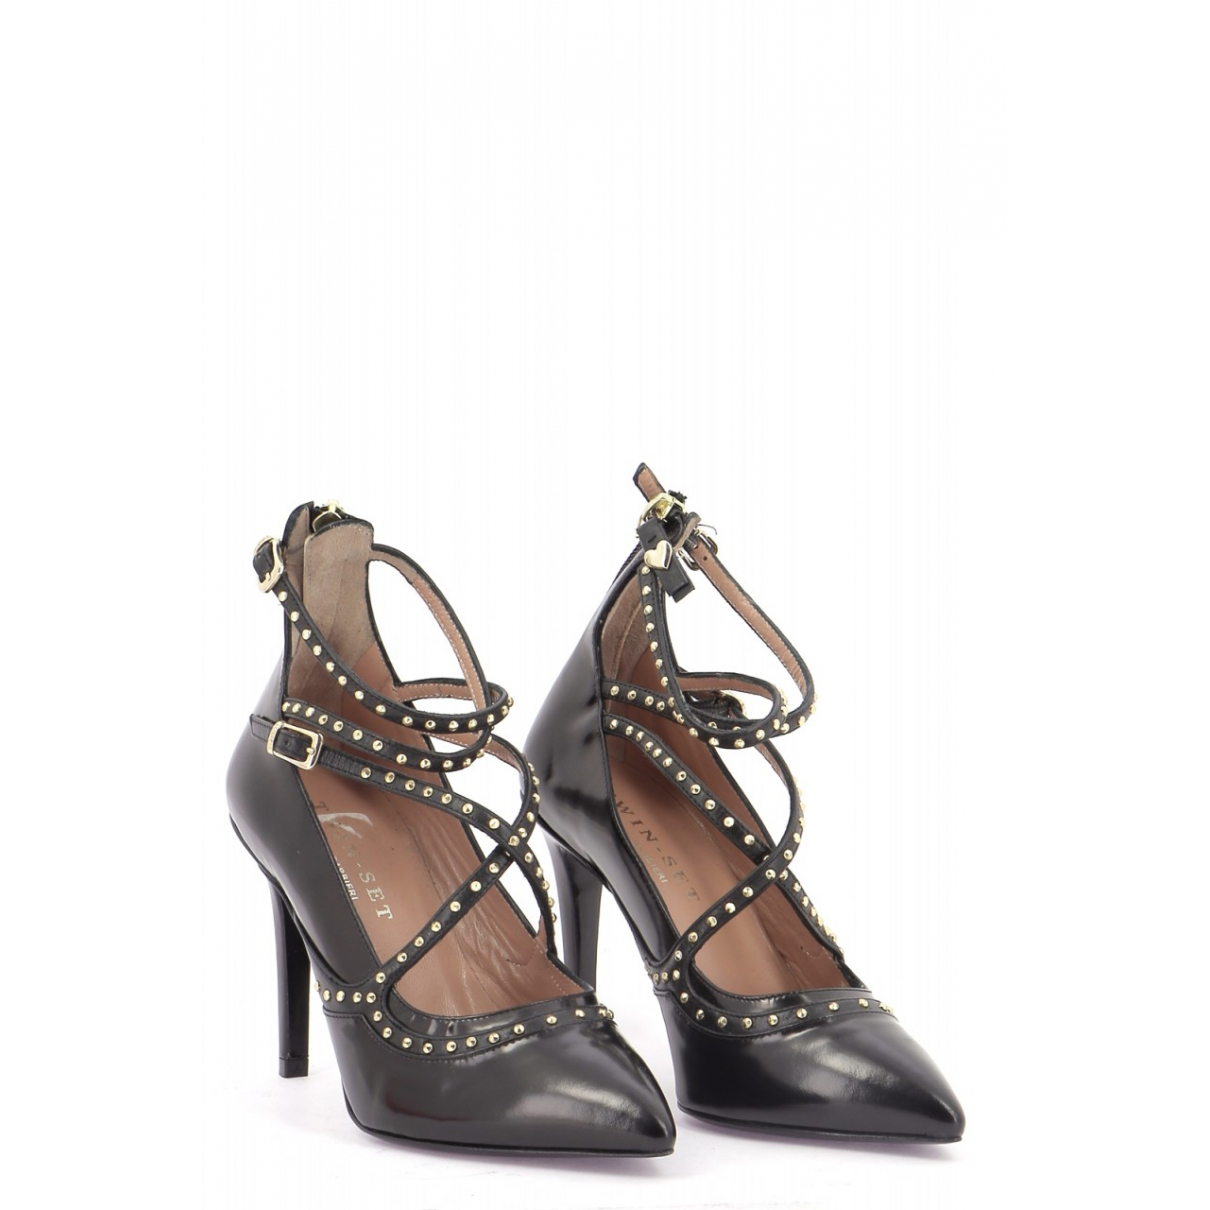 Twin Set N Black Leather Heels for Women 38 EU